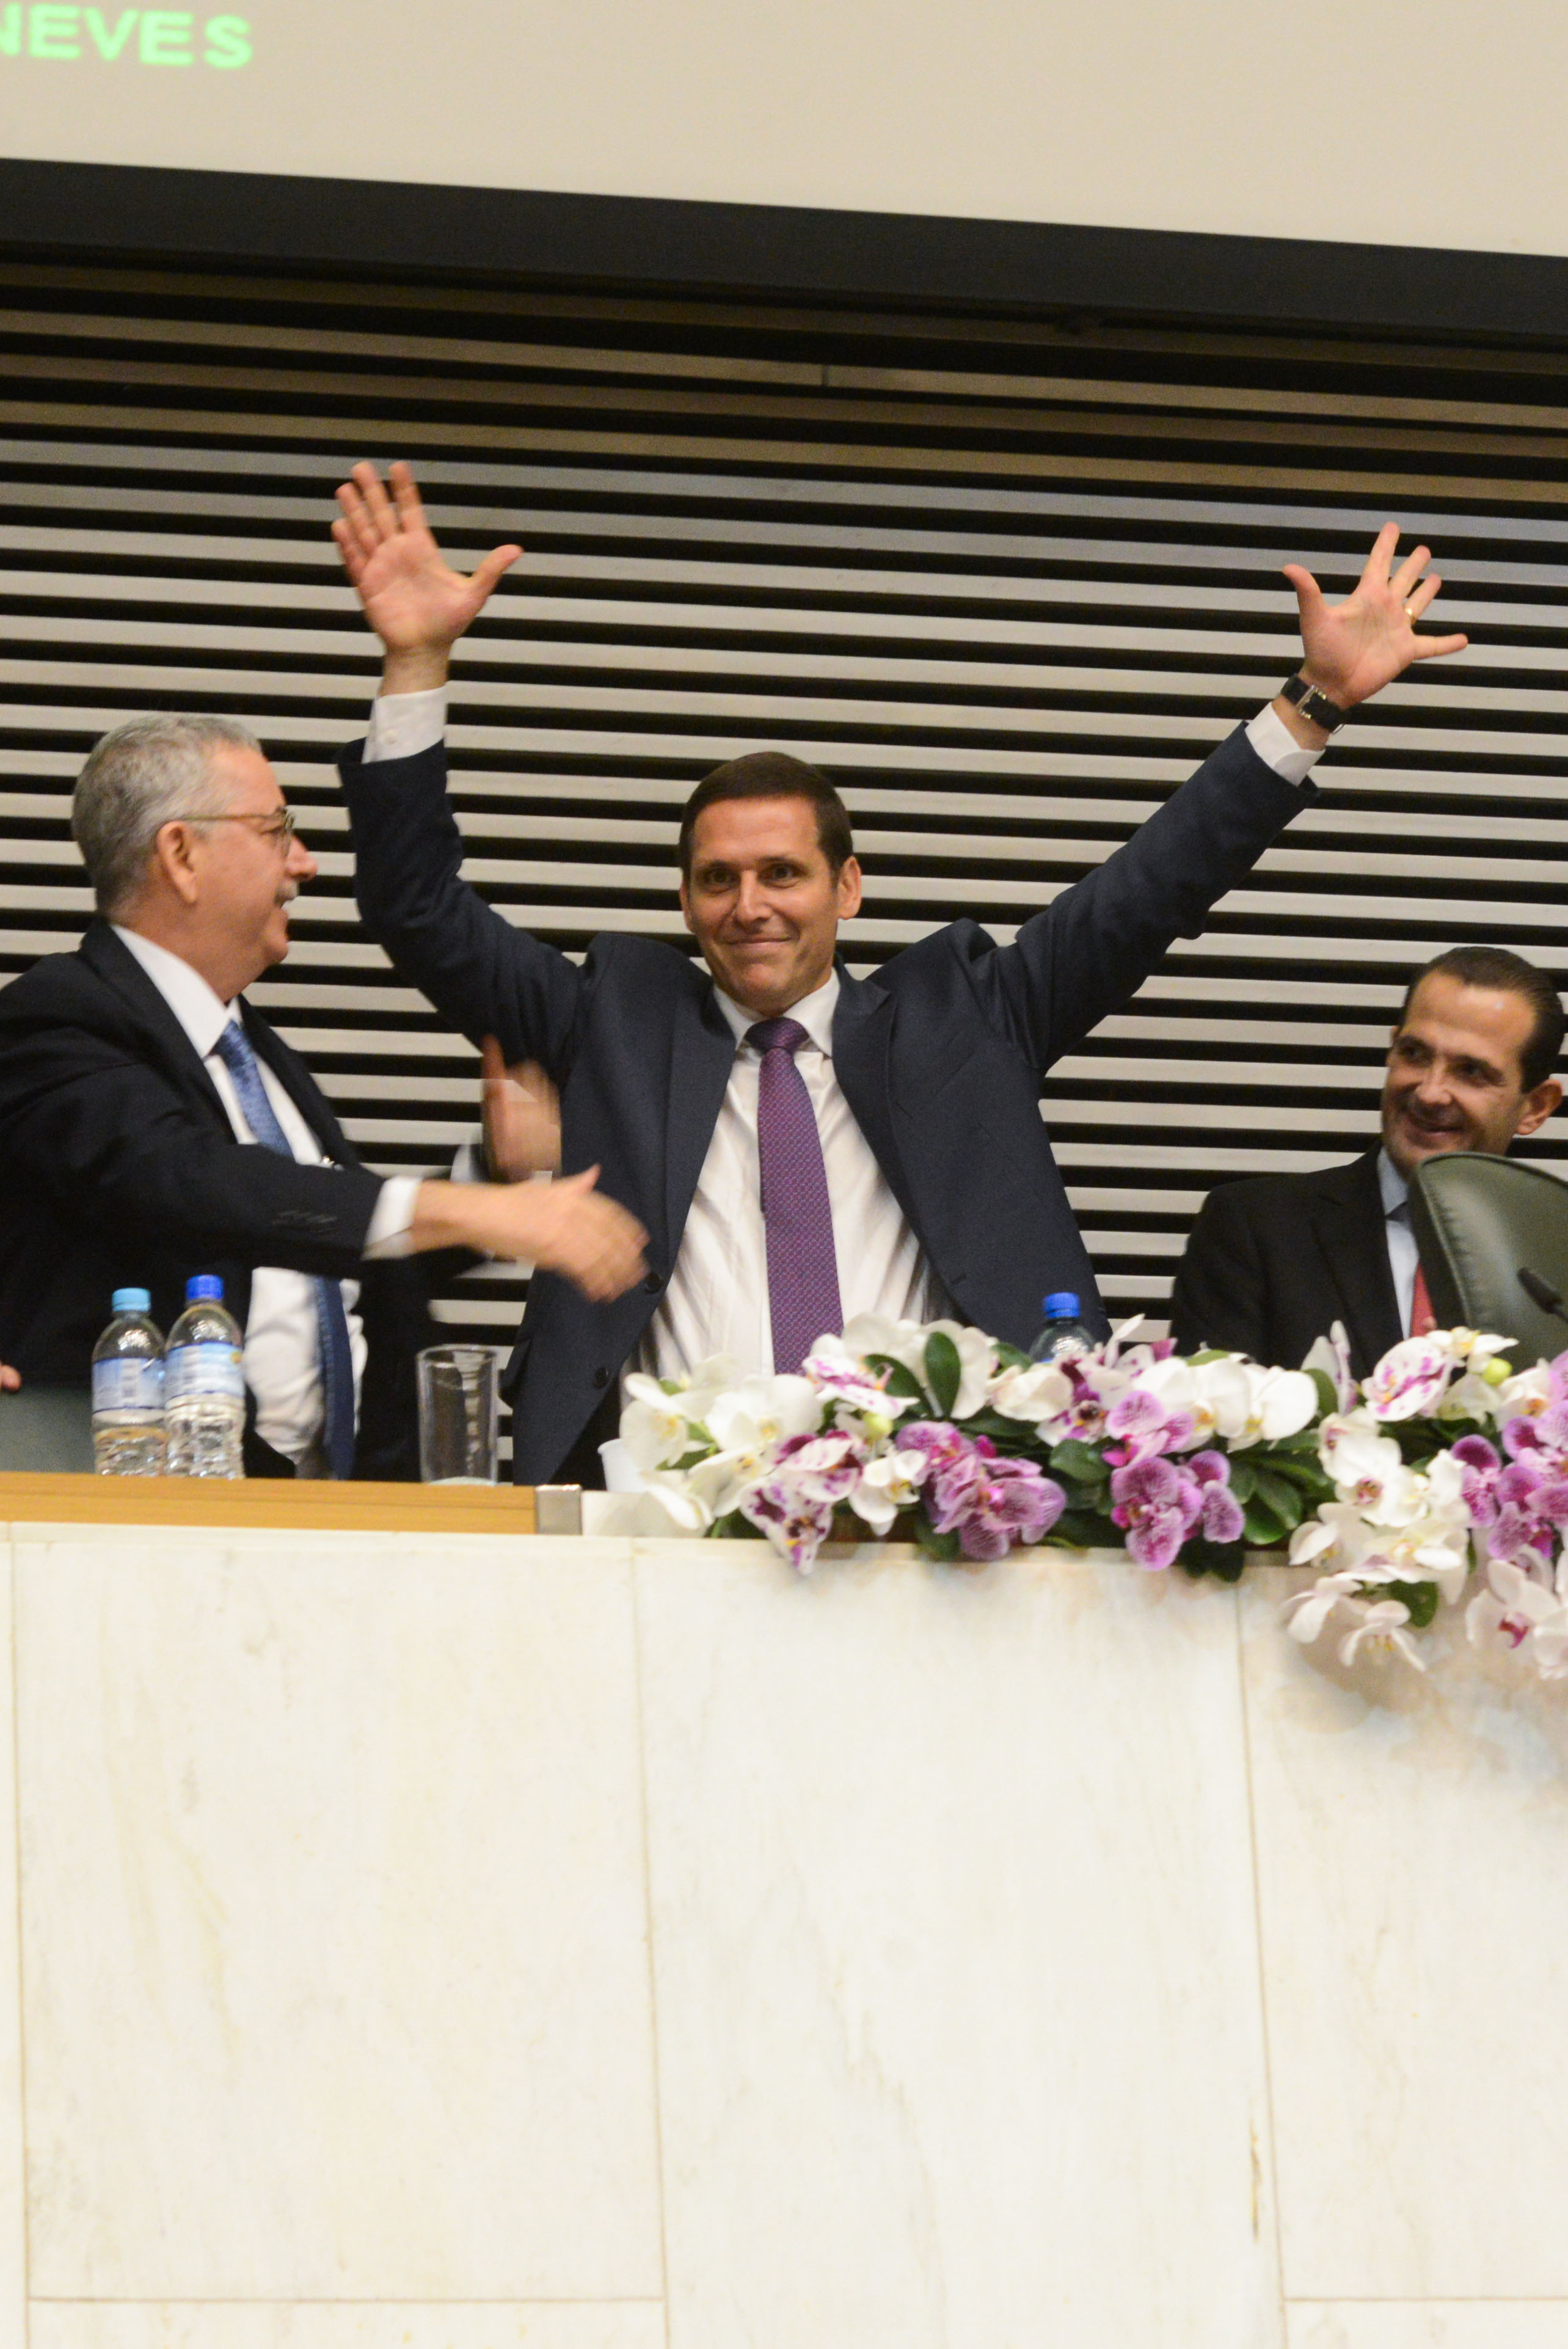 Chico Sardelli, Fernando Capez e Edmir Chedid <a style='float:right' href='https://www3.al.sp.gov.br/repositorio/noticia/N-03-2015/fg168405.jpg' target=_blank><img src='/_img/material-file-download-white.png' width='14px' alt='Clique para baixar a imagem'></a>